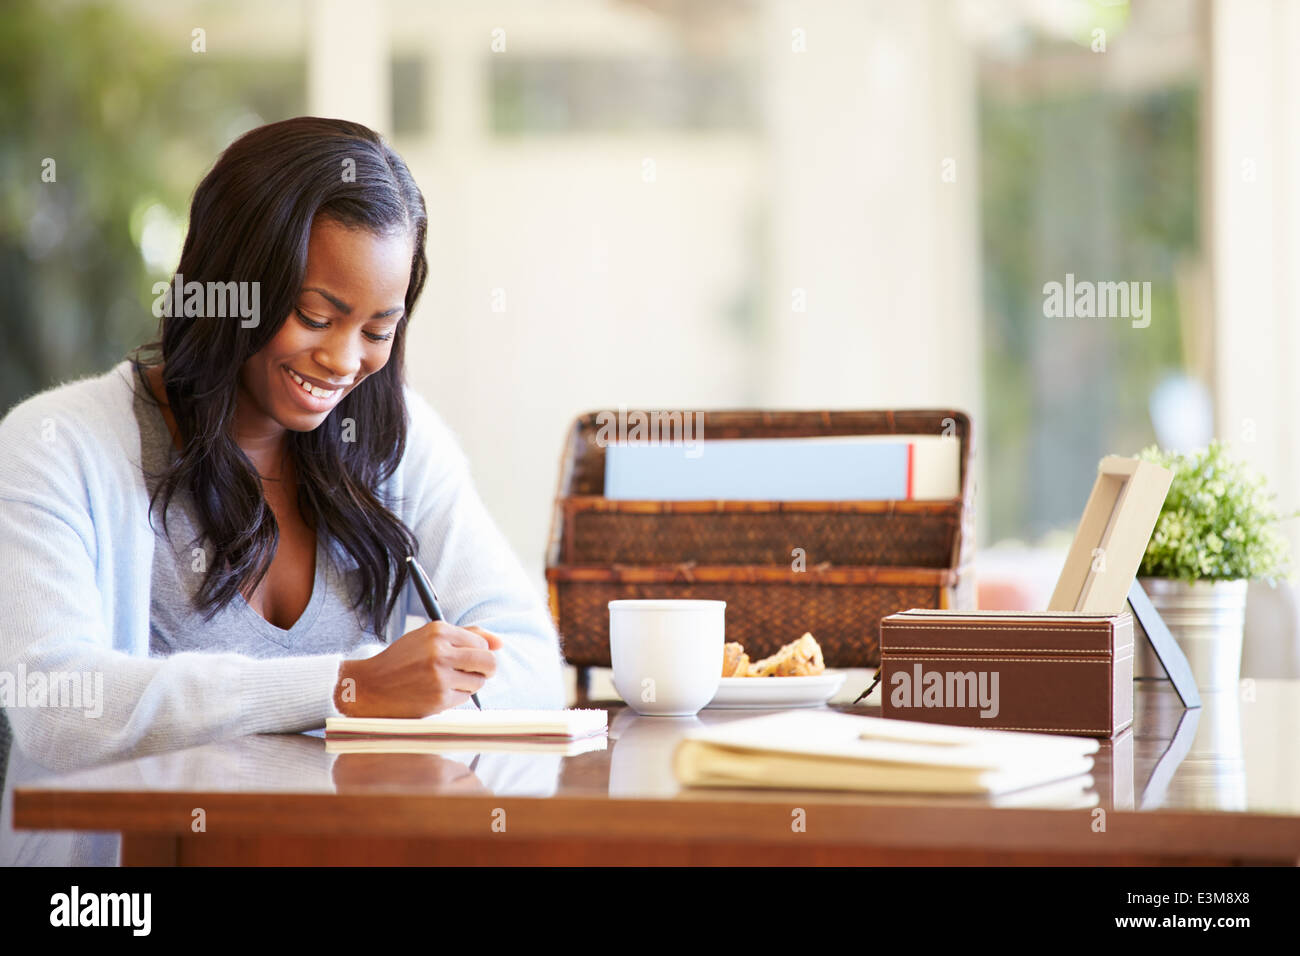 Woman Writing In Notebook Sitting At Desk - Stock Image